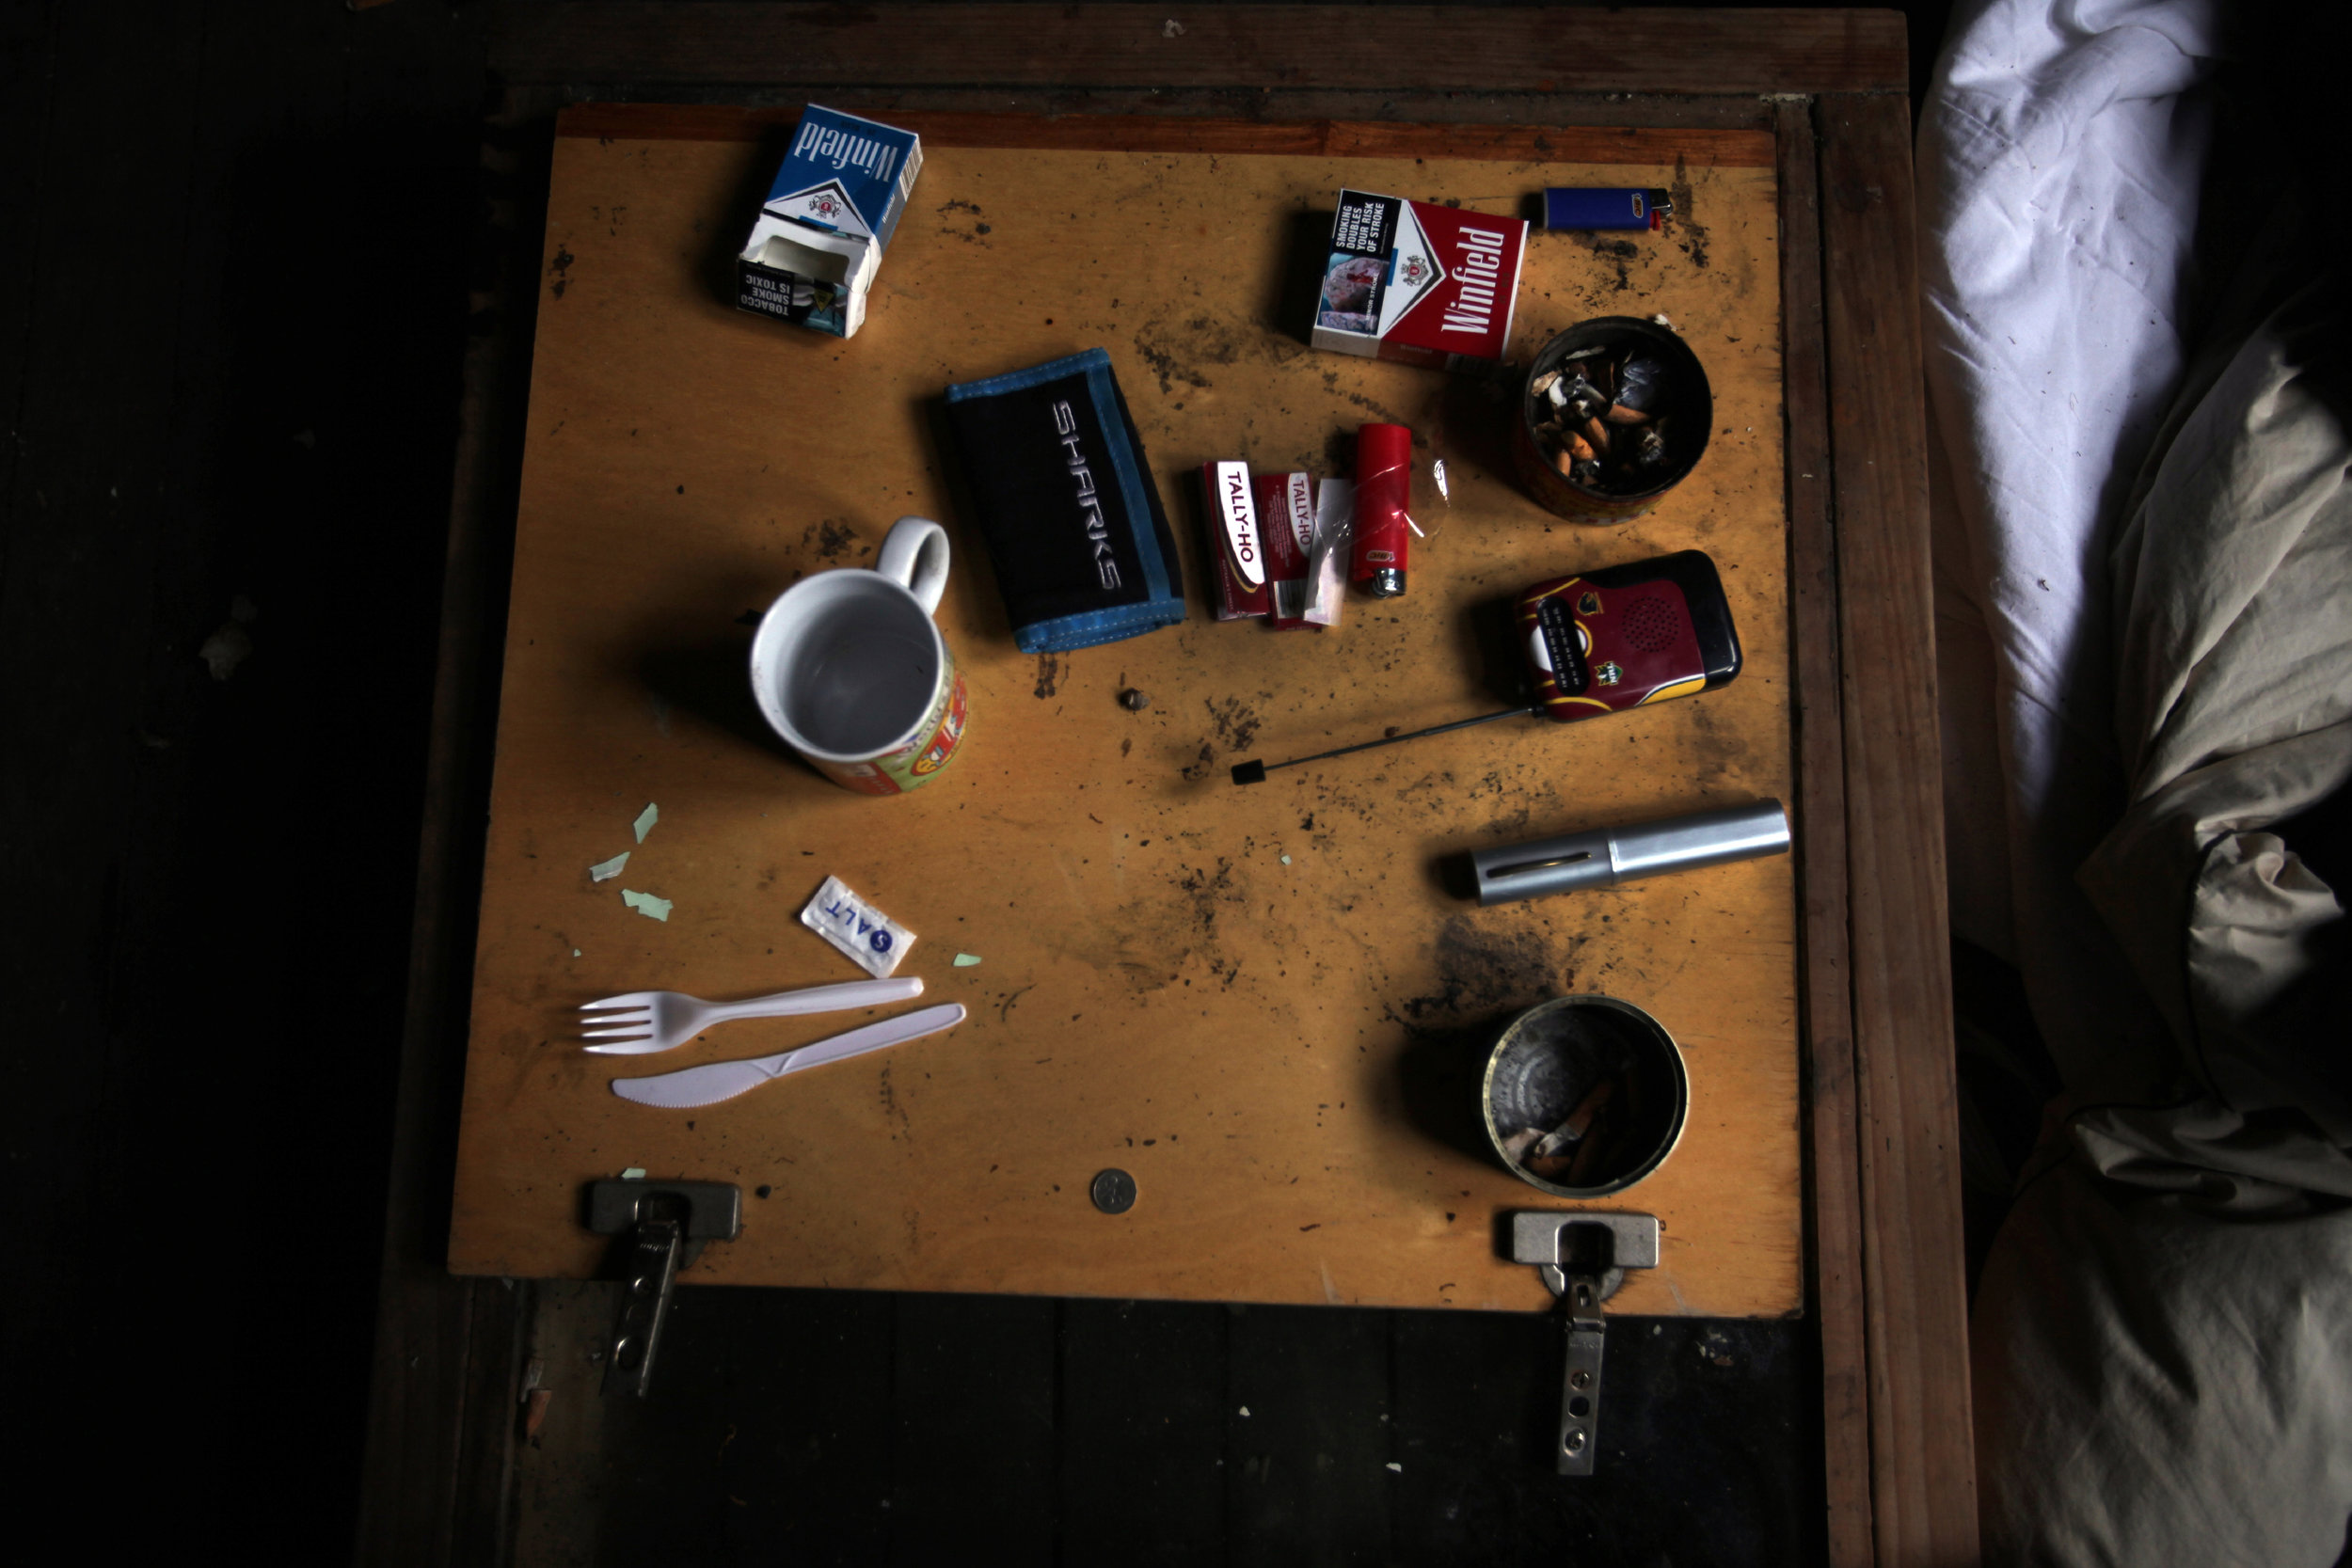 Denis's bedside table in the derelict building that is currently his abode.